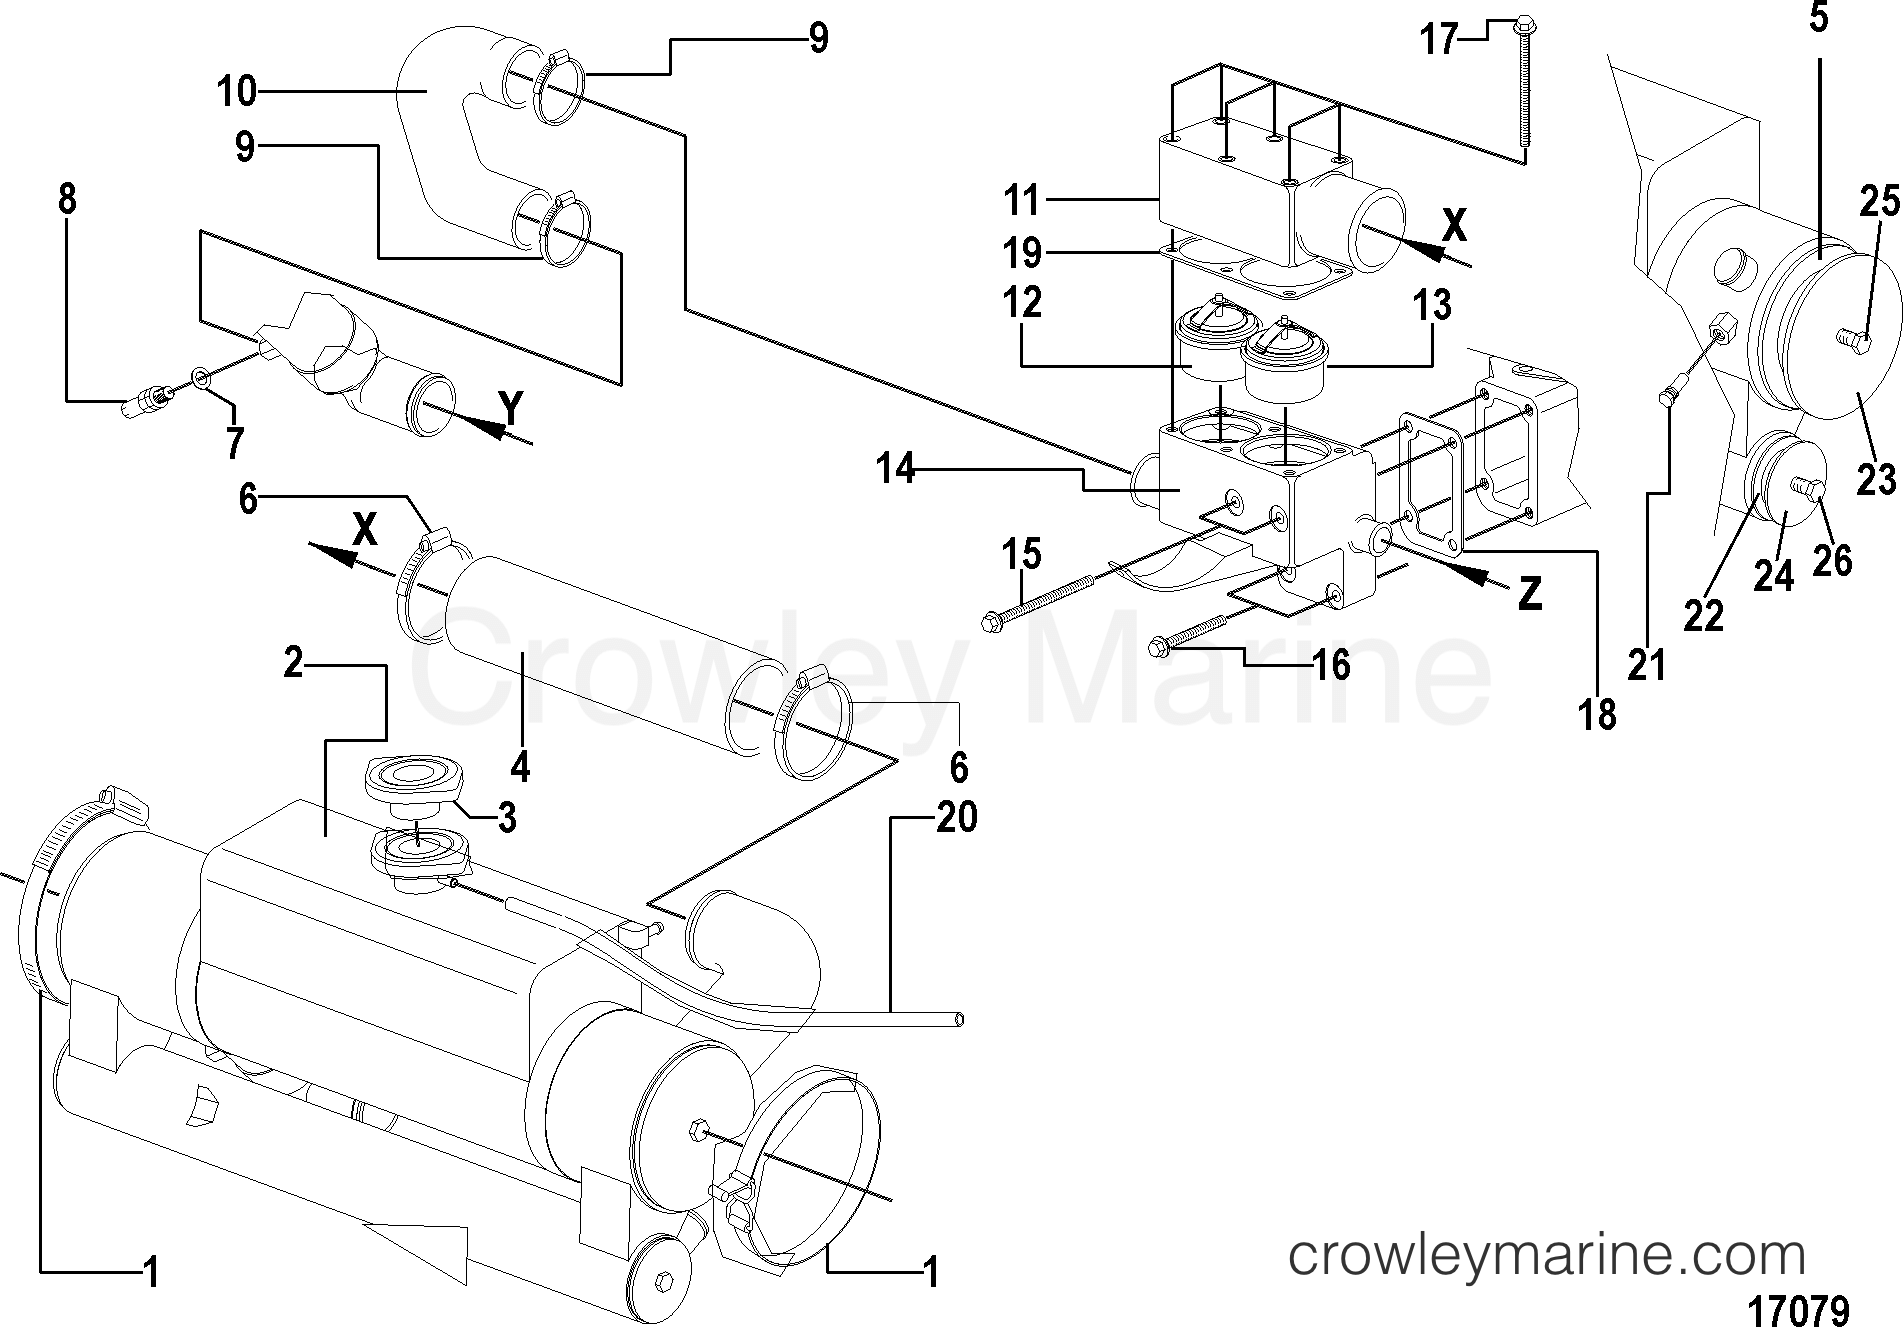 heat exchanger and thermostat housing